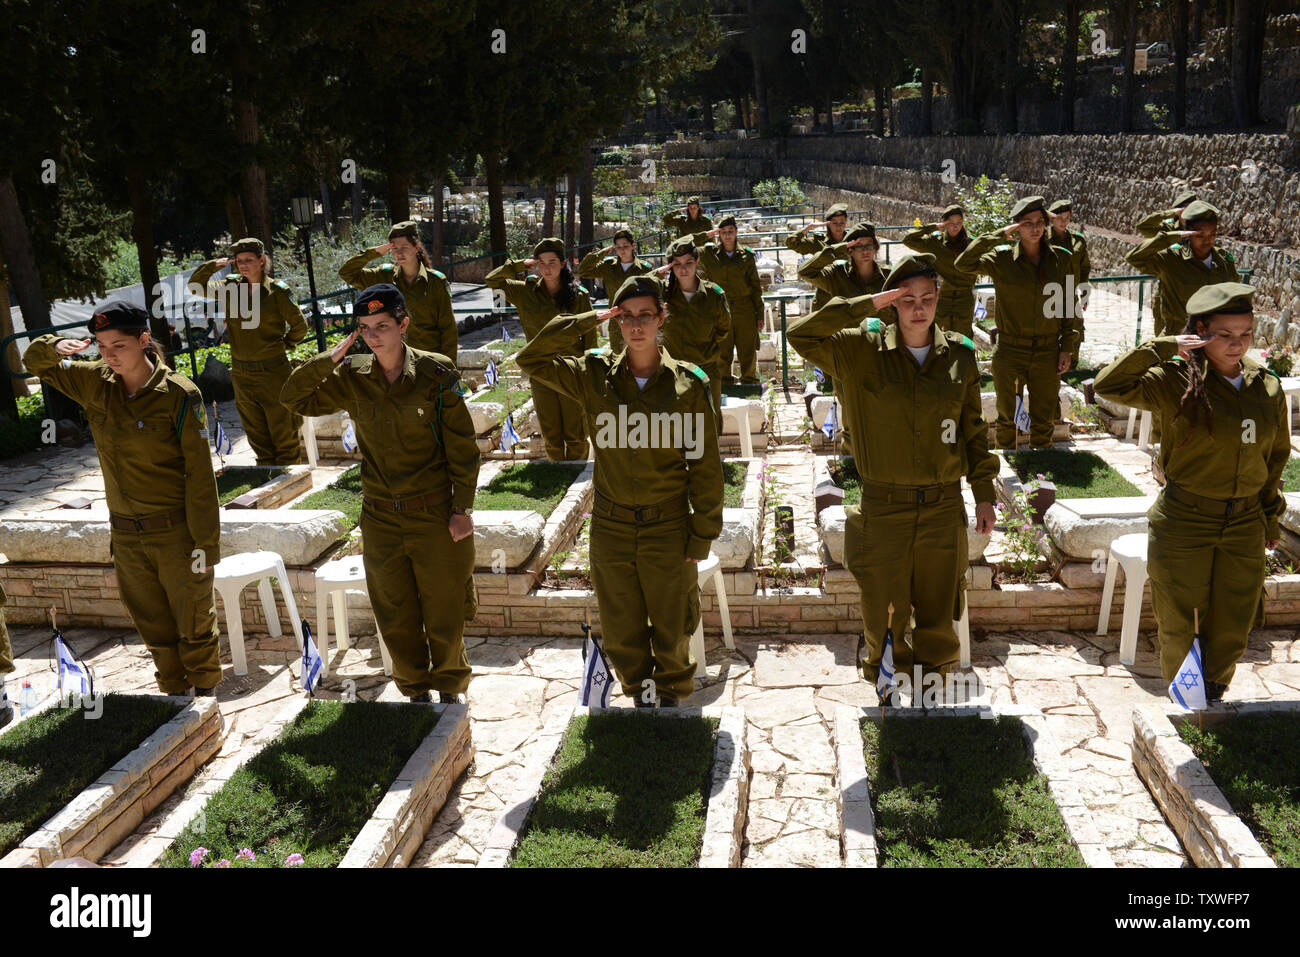 Israeli soldiers salute after decorating graves of fallen soldiers with national flags with black ribbons for Remembrance Day at the Mt. Herzl Military Cemetery in Jerusalem, Israel, April 14, 2013. Israel's Remembrance Day for fallen soldiers begins at sunset with a one minute siren.  UPI/Debbie Hill Stock Photo